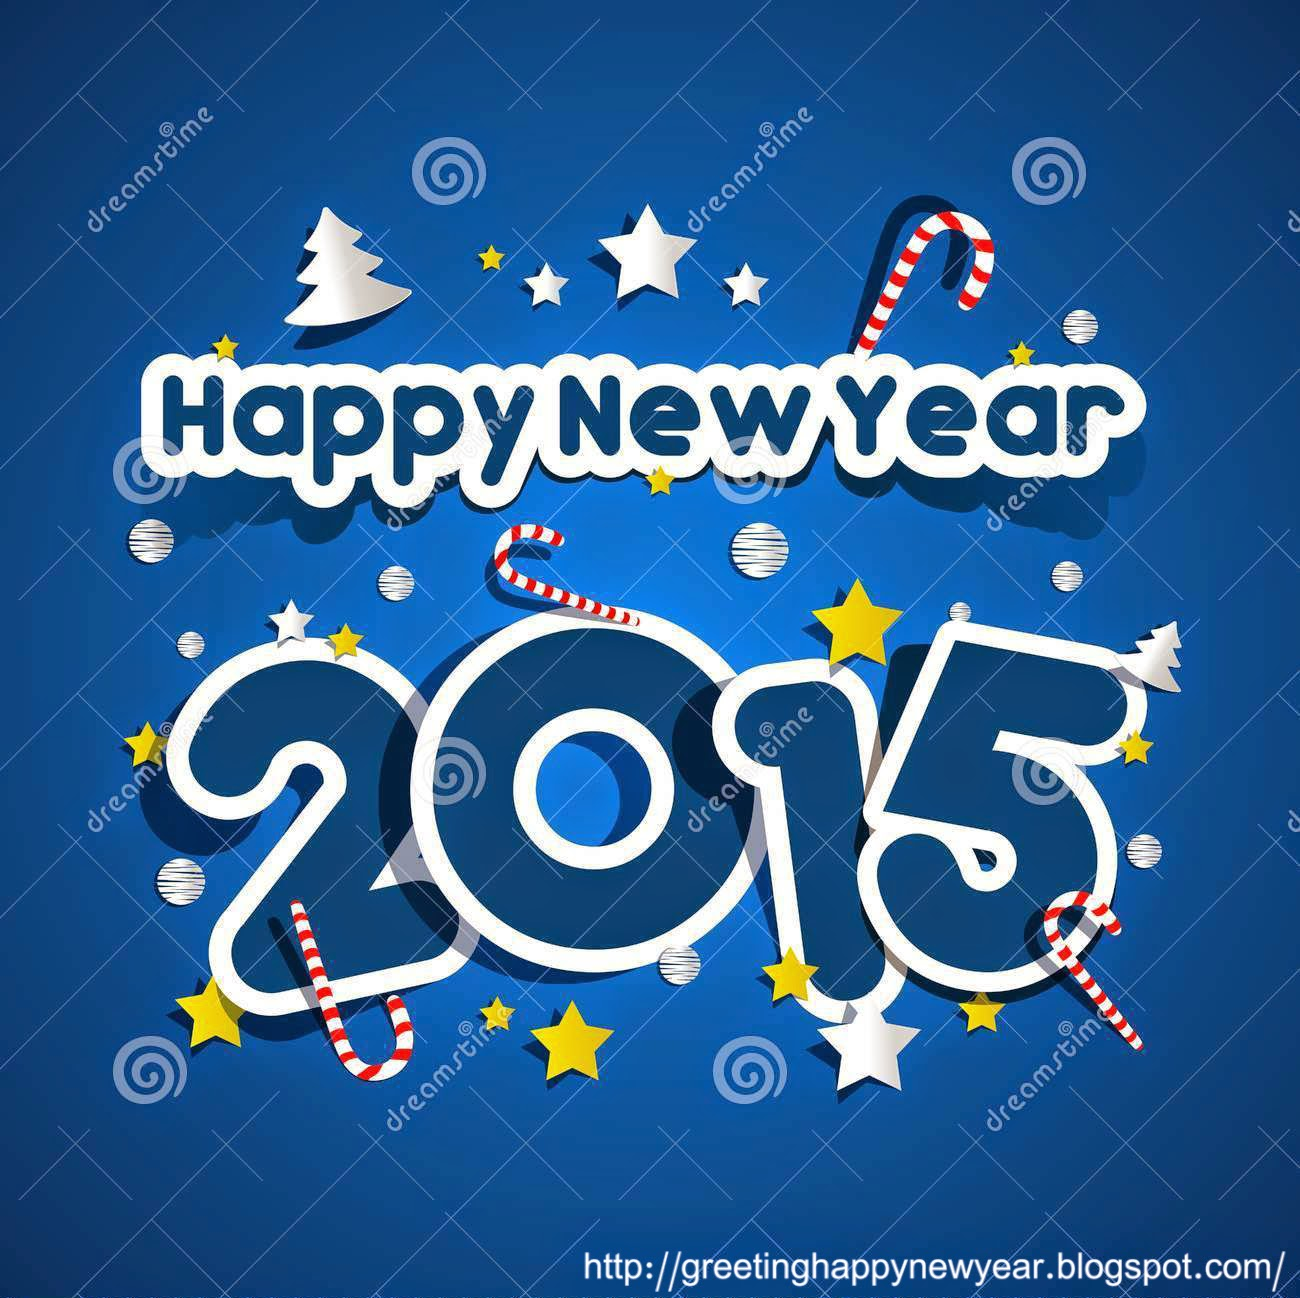 Greeting Happy New Year Photos 2015